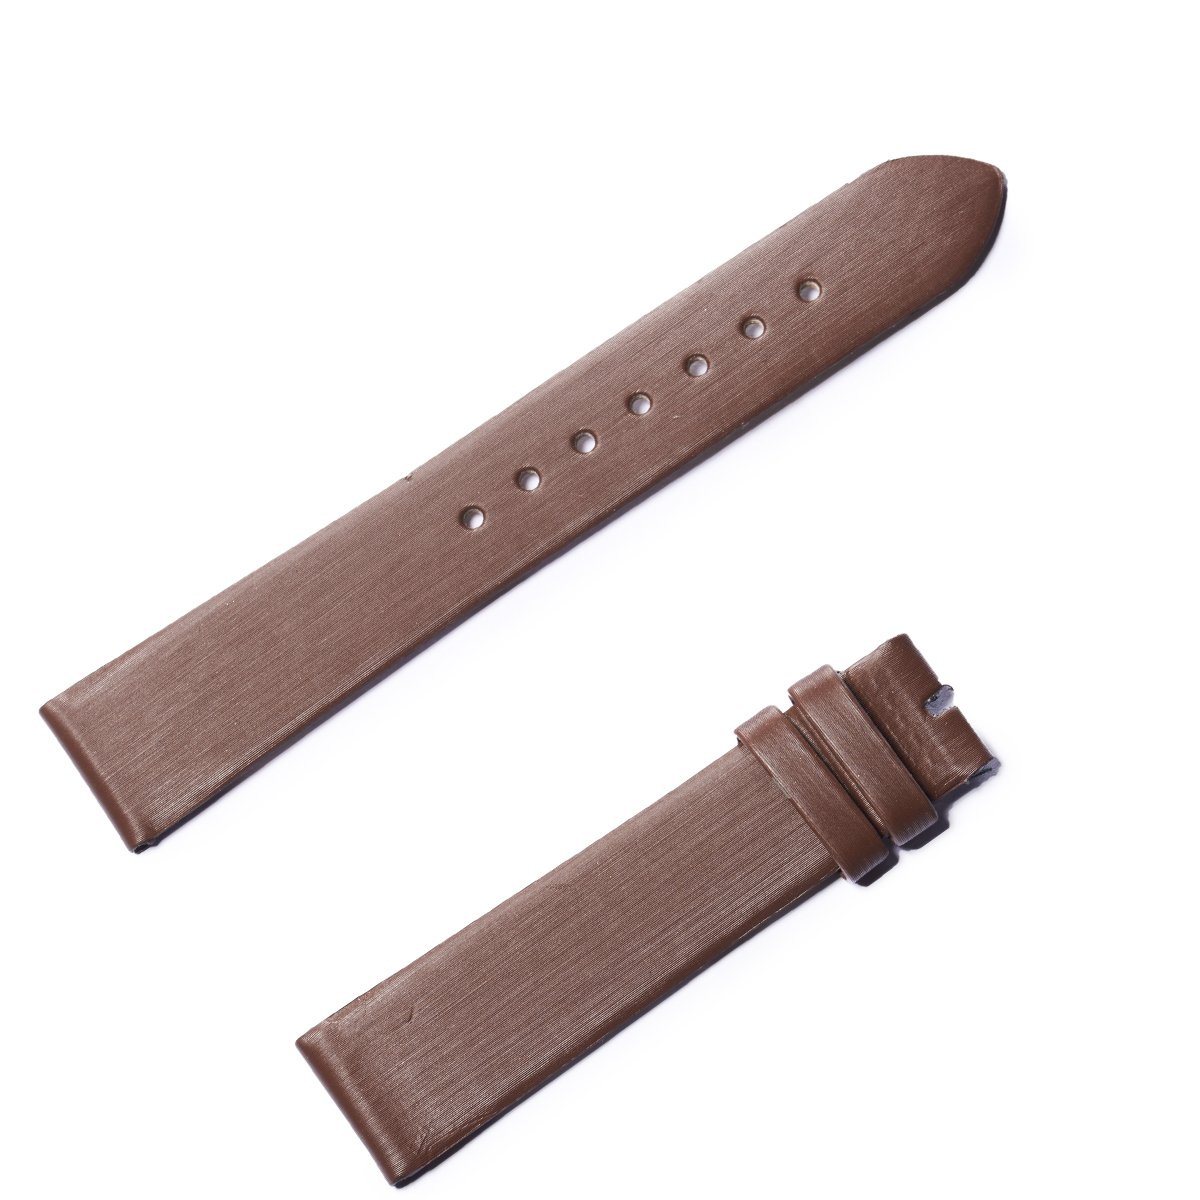 REEF TIGER RT Woman Leather Wrist Watch Band Strap Brown Durable Watchband for Ladies RGA1563